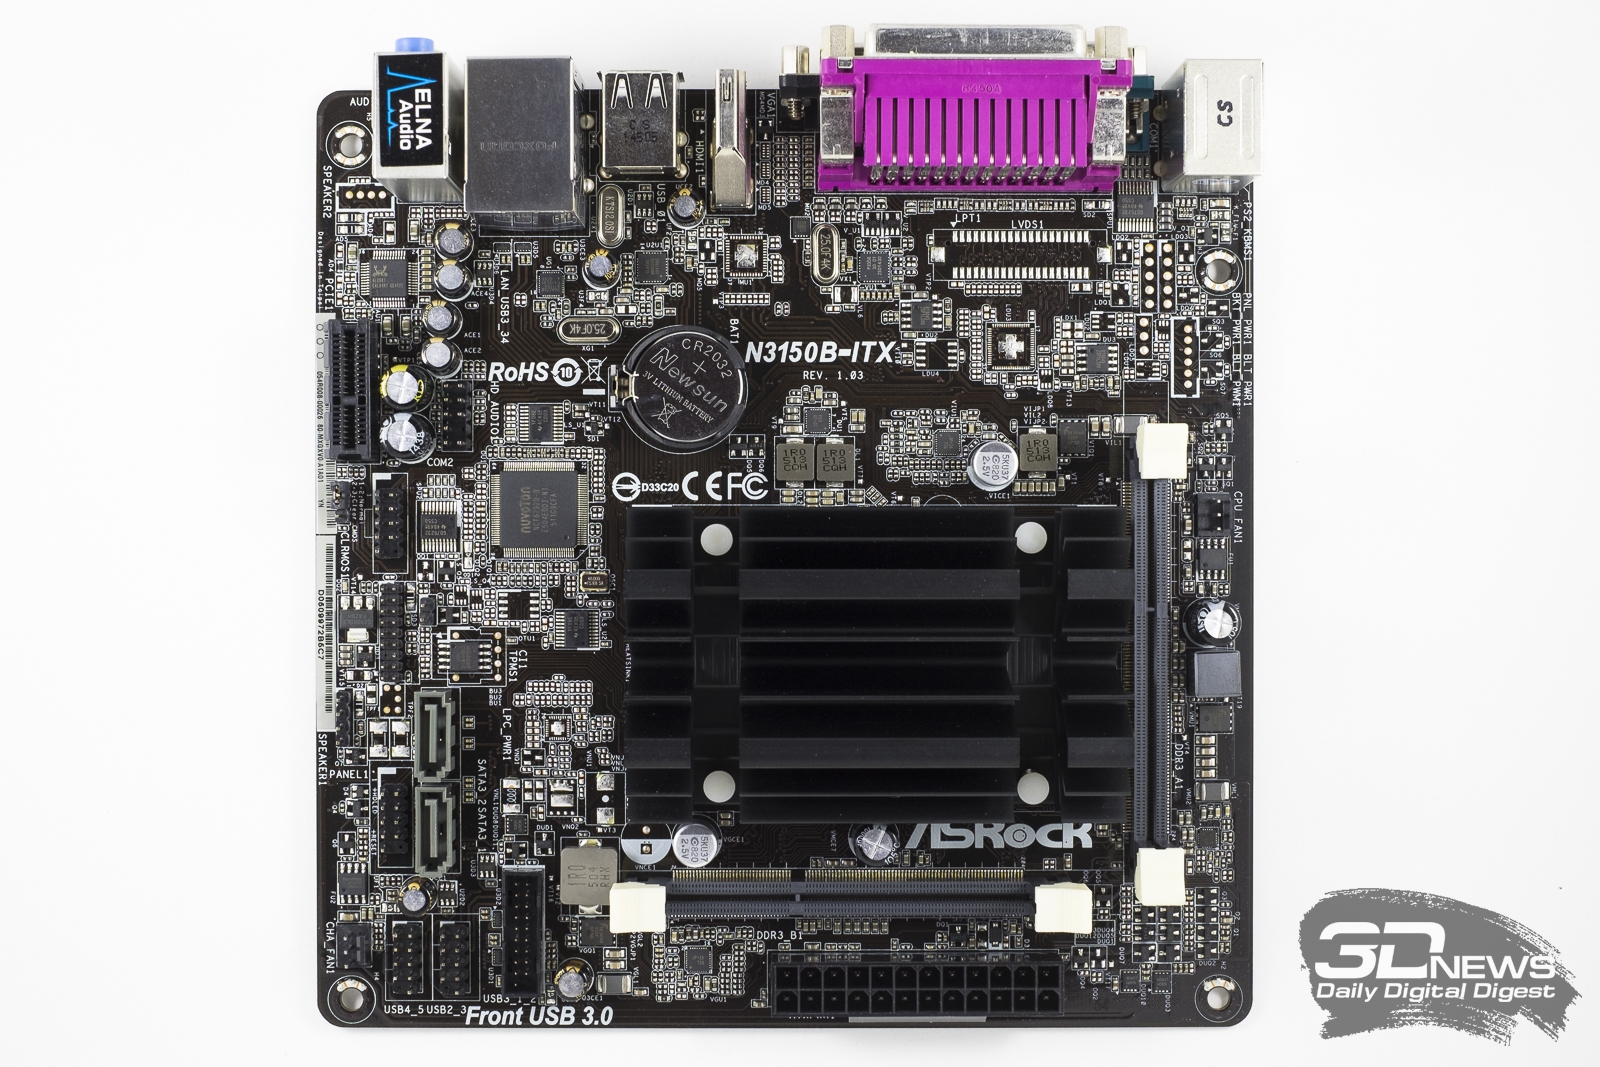 ASROCK N3700-ITX MOTHERBOARD DRIVER DOWNLOAD FREE